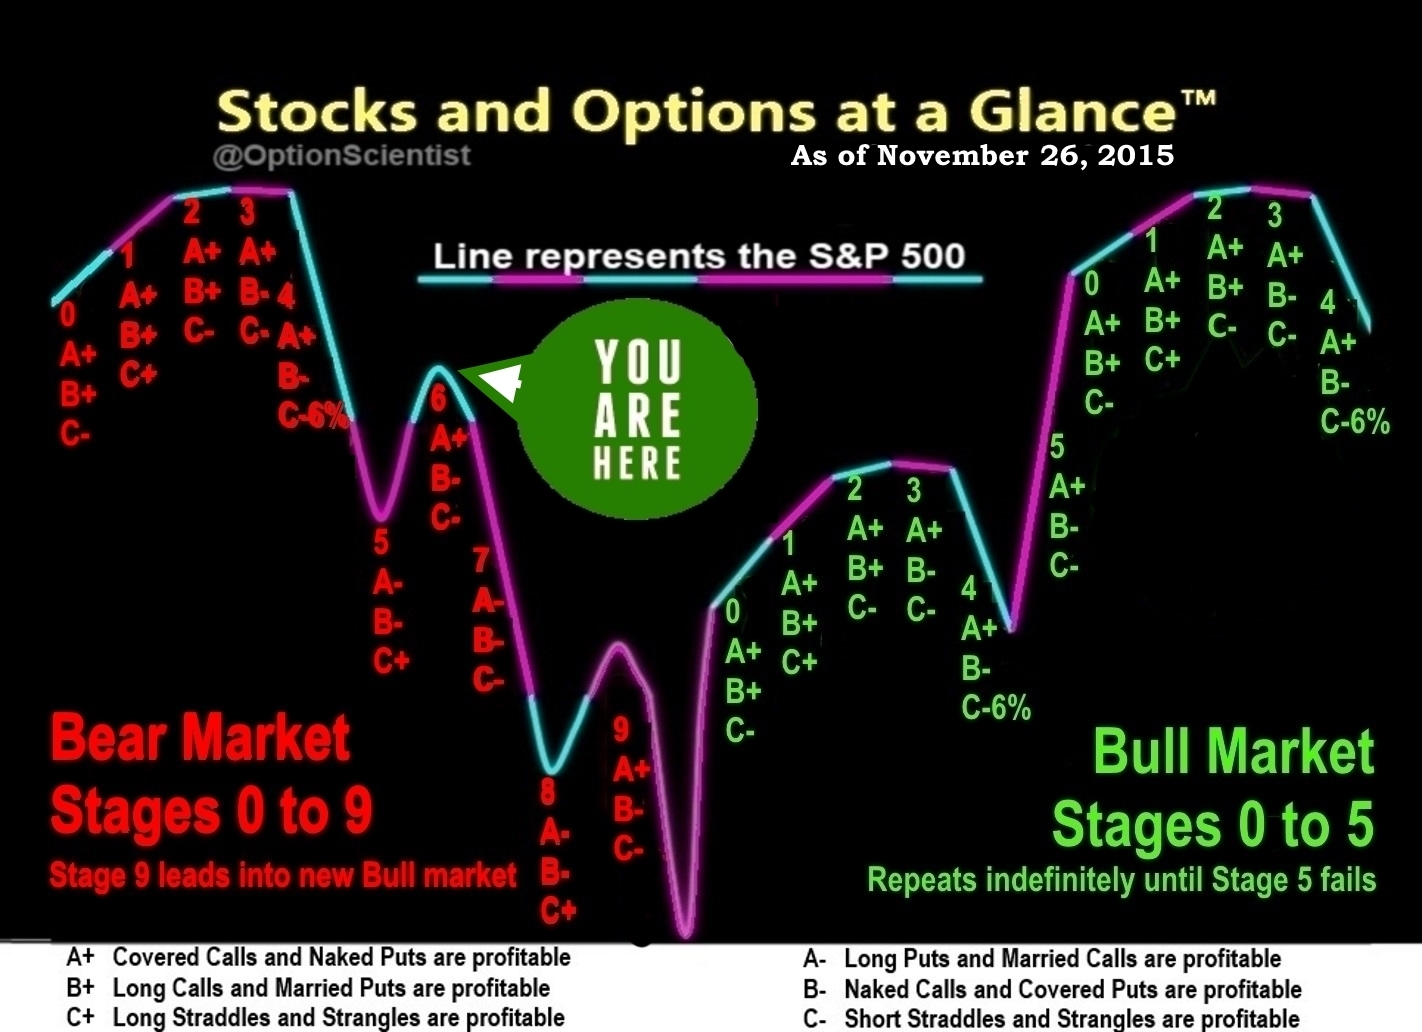 Stocks and Options at a Glance 11-26-15